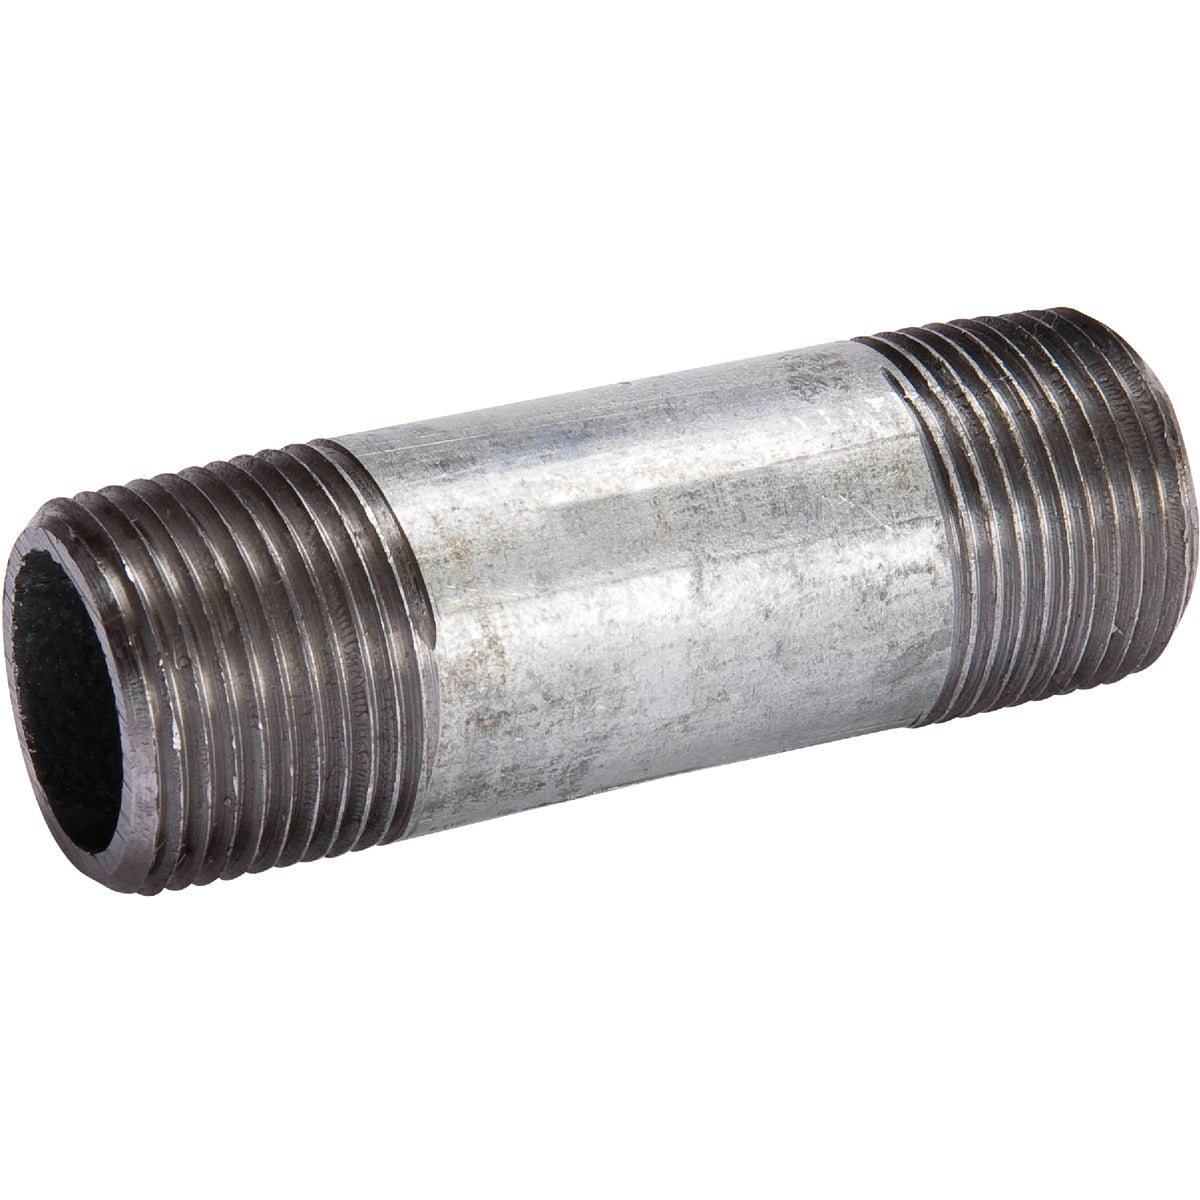 1/2X2 GALV NIPPLE - 10402 by Southland Pipe Nippl